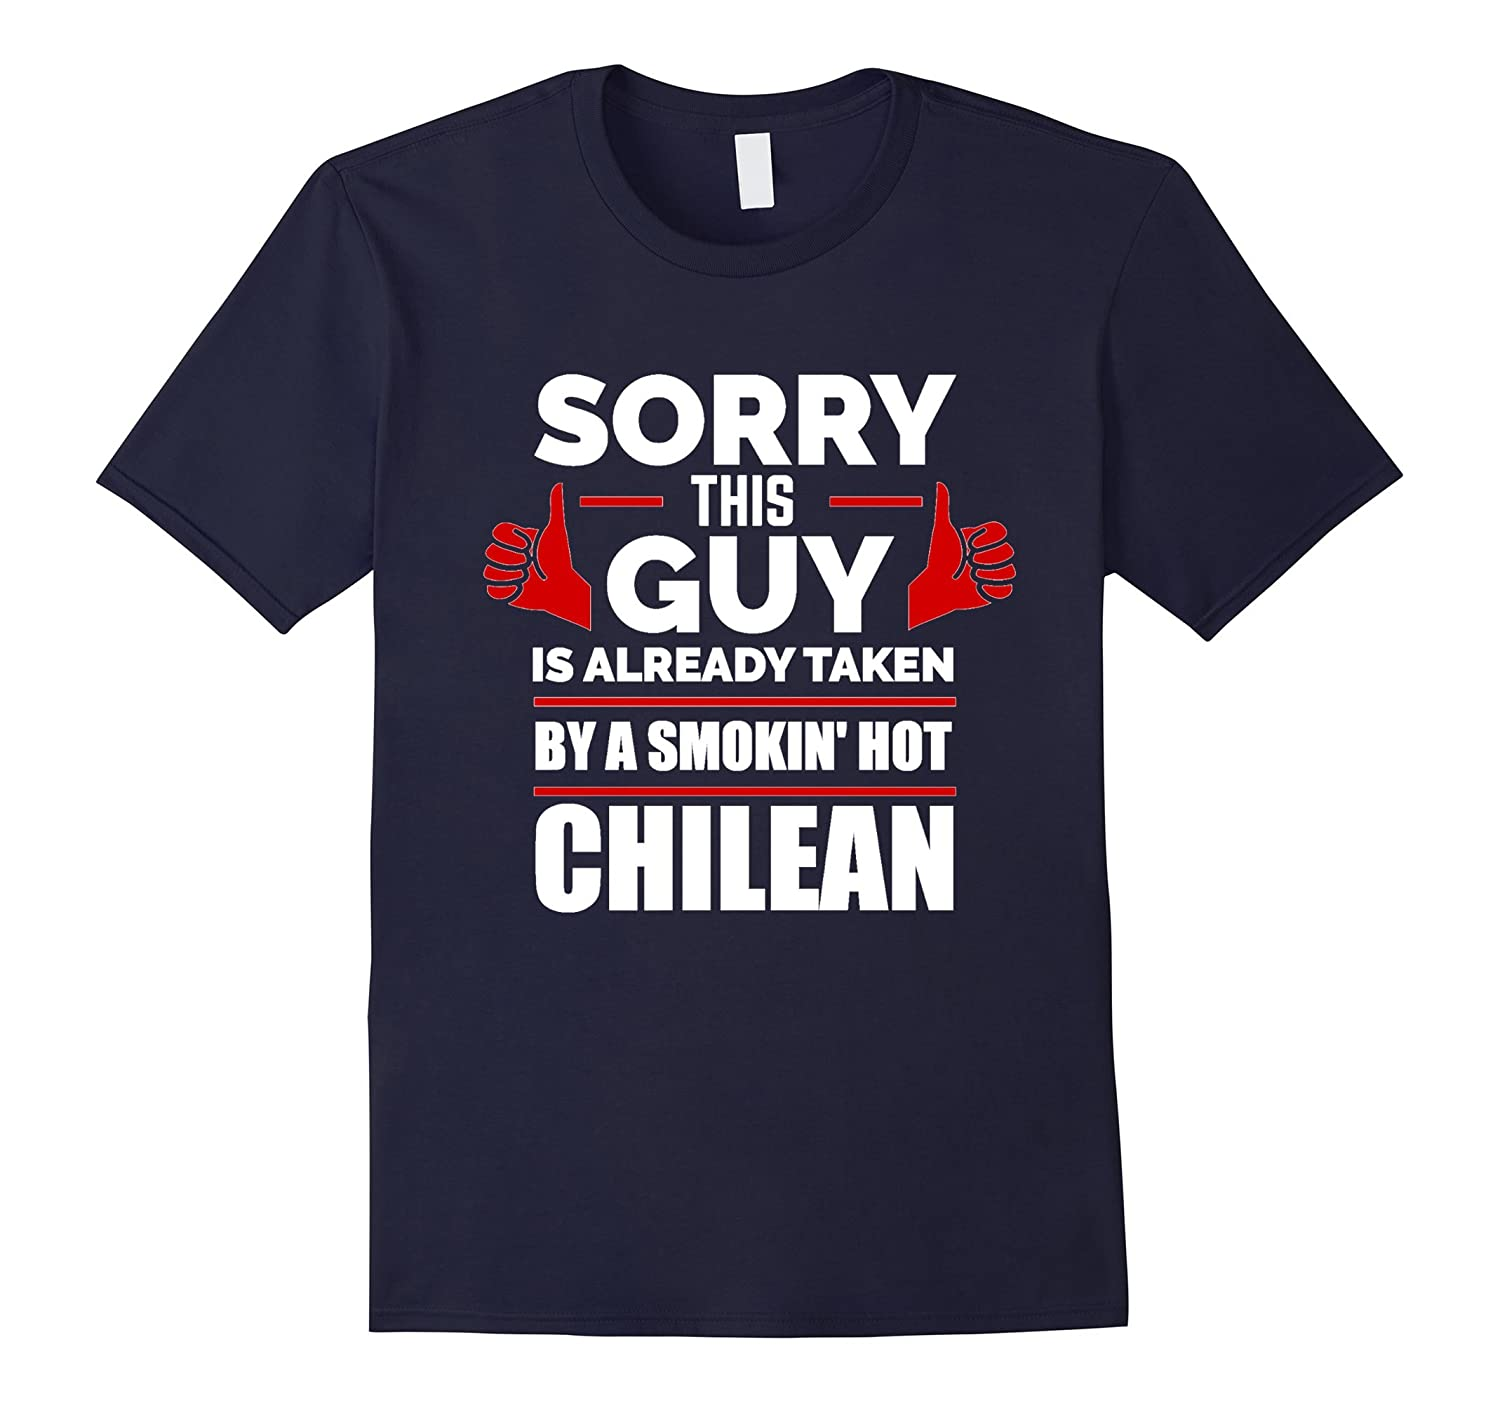 Sorry This Guy is Taken by a Smoking Hot Chilean T-shirt-Vaci